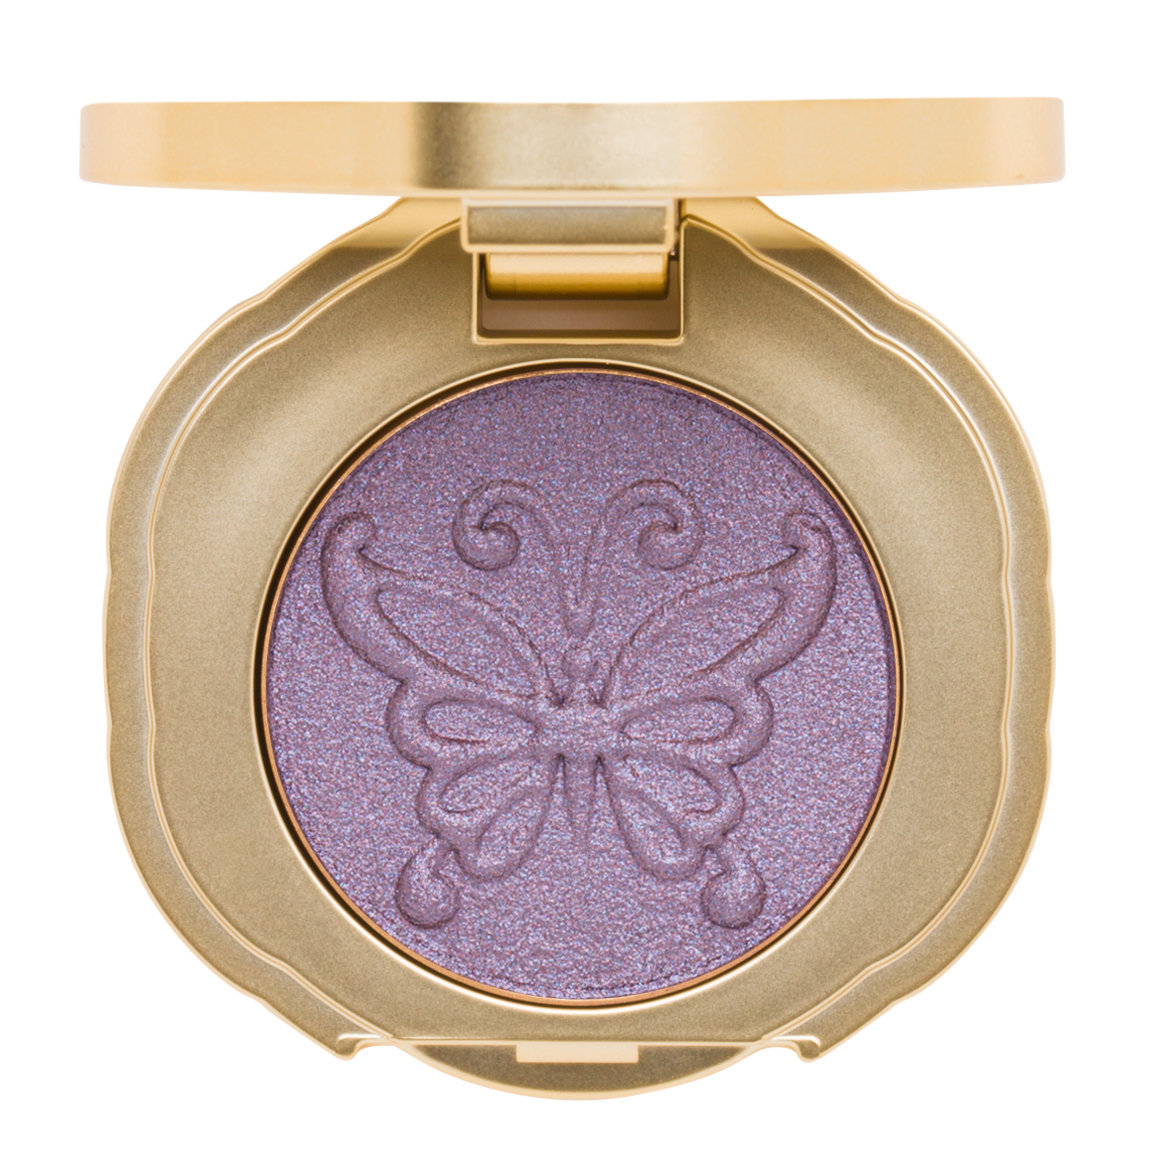 Anna Sui Eye Color I 200 product swatch.